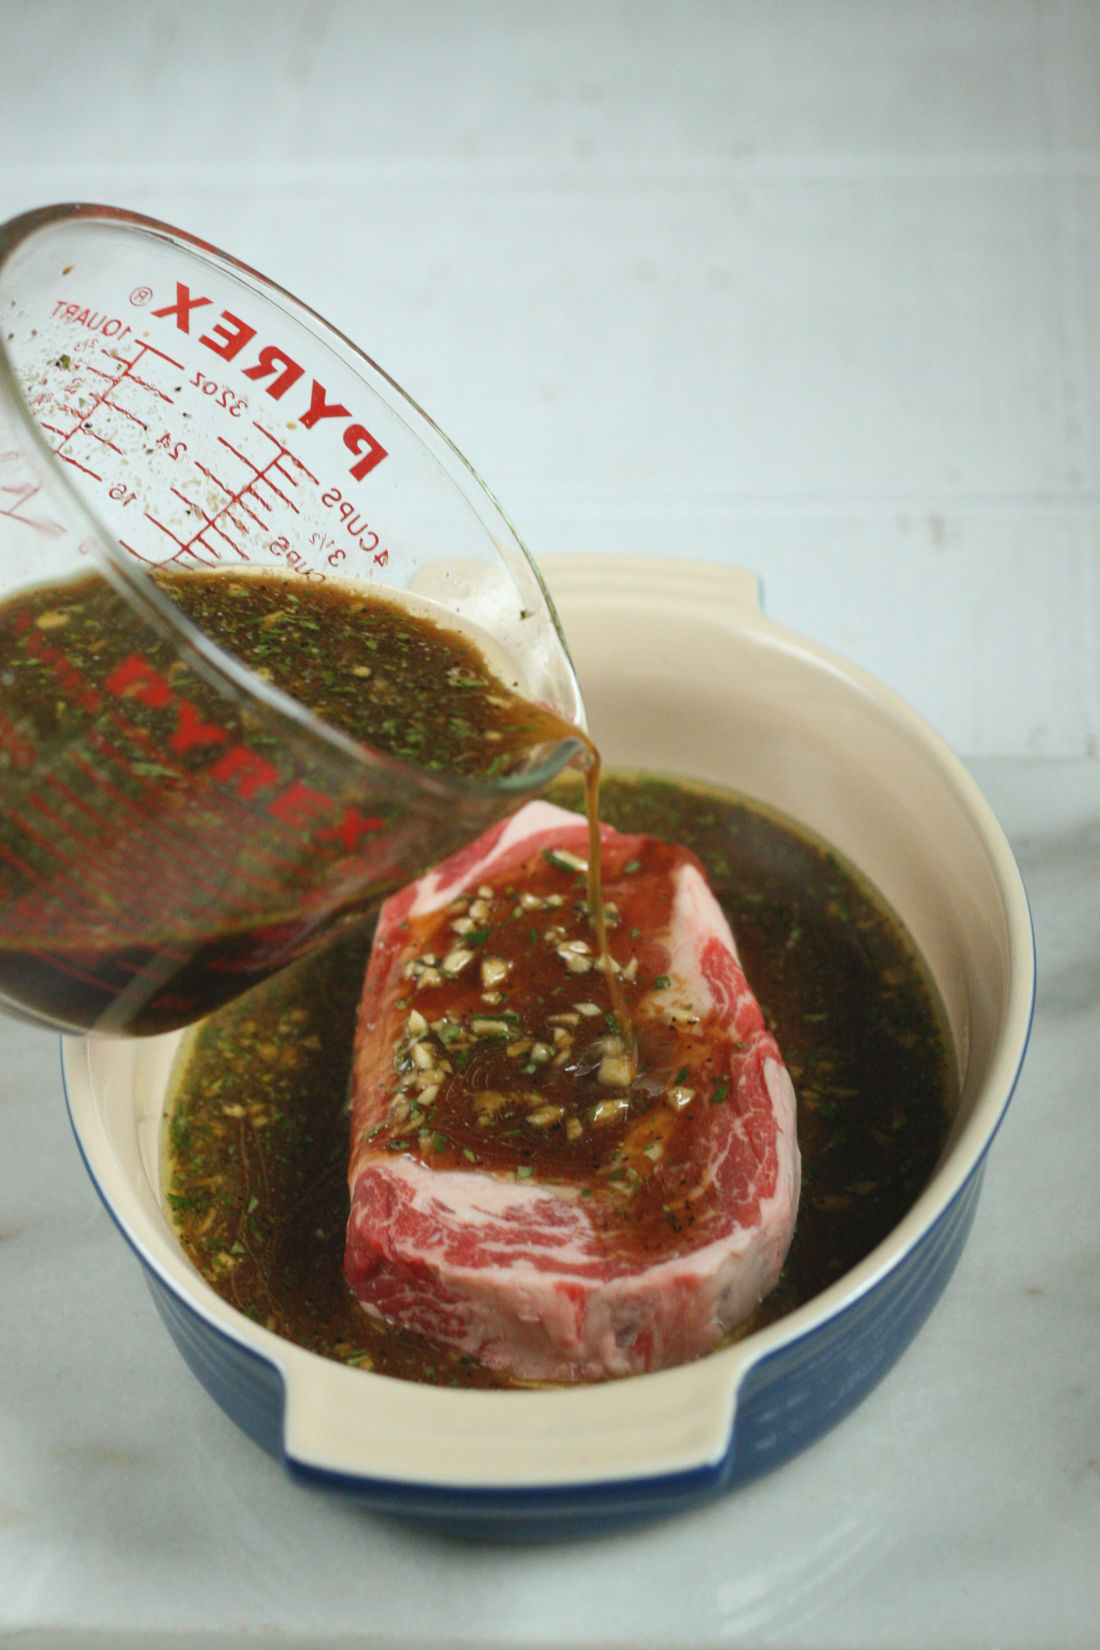 steak marinade in a glass measuring cup being poured over a steak.